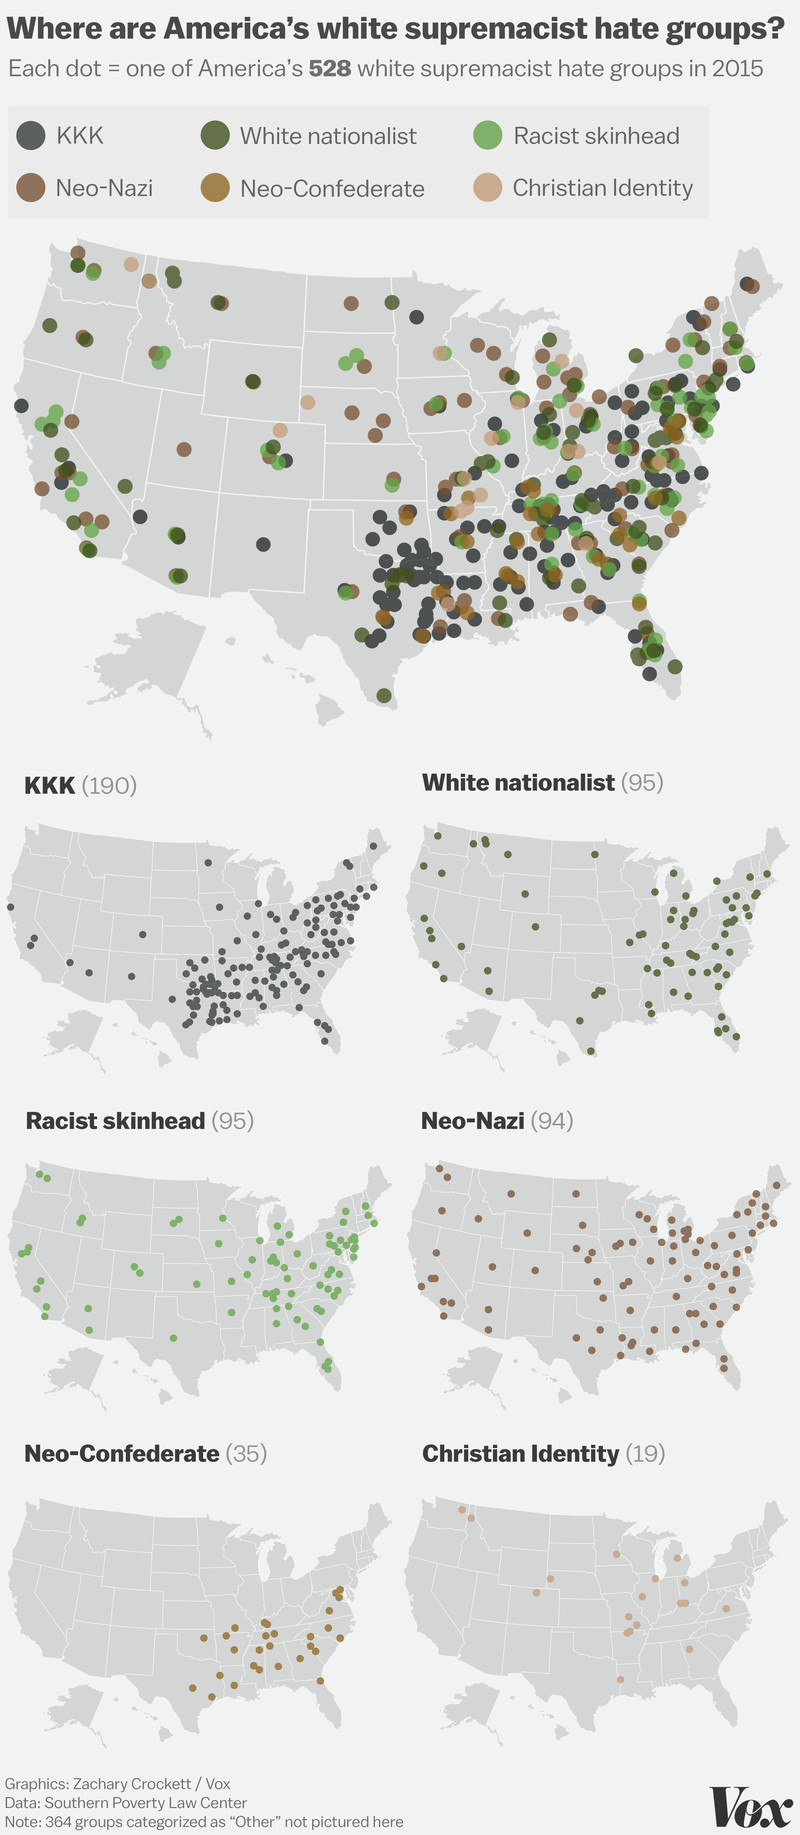 HttpscdnvoxcdncomthumborbALPjBuSMccMPLBk - A map of us after white supremcists take over